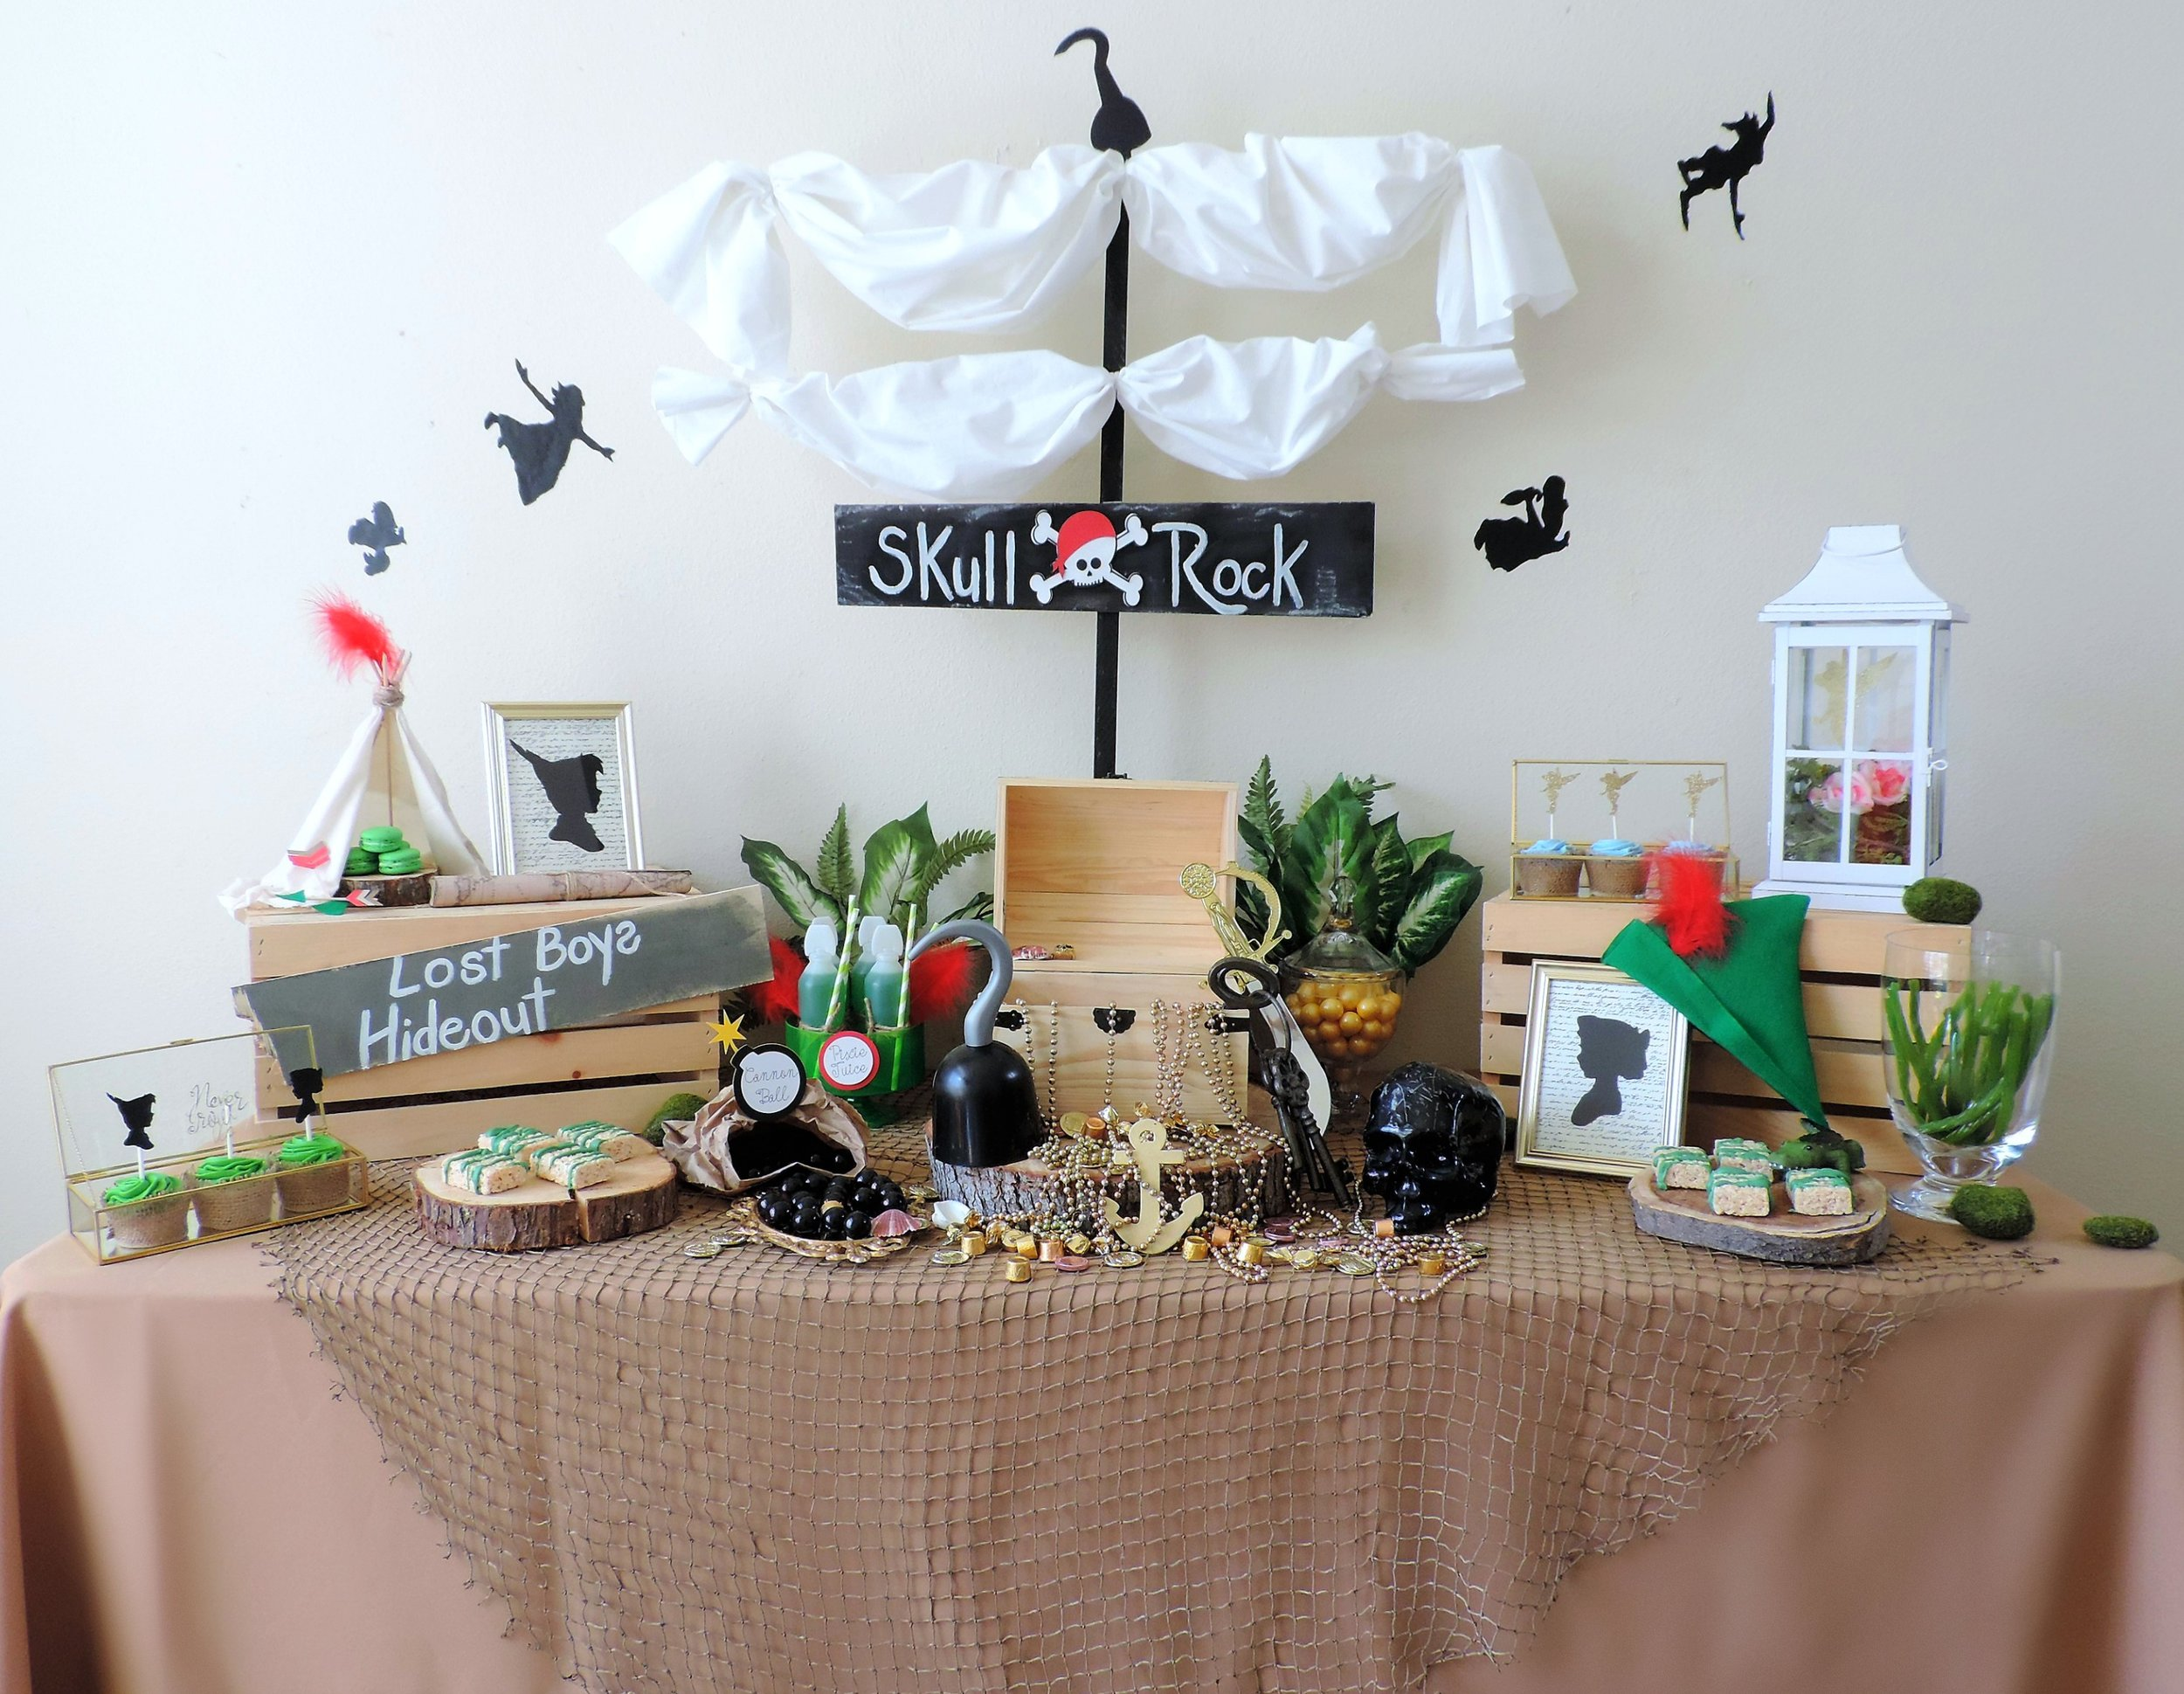 Peter Pan Dessert Table-Peter Pan Party ideas-Peter Pan party decor-peter pan party ideas-never grow up-skull rock -kids party ideas-www.SugarPartiesla.com.jpg